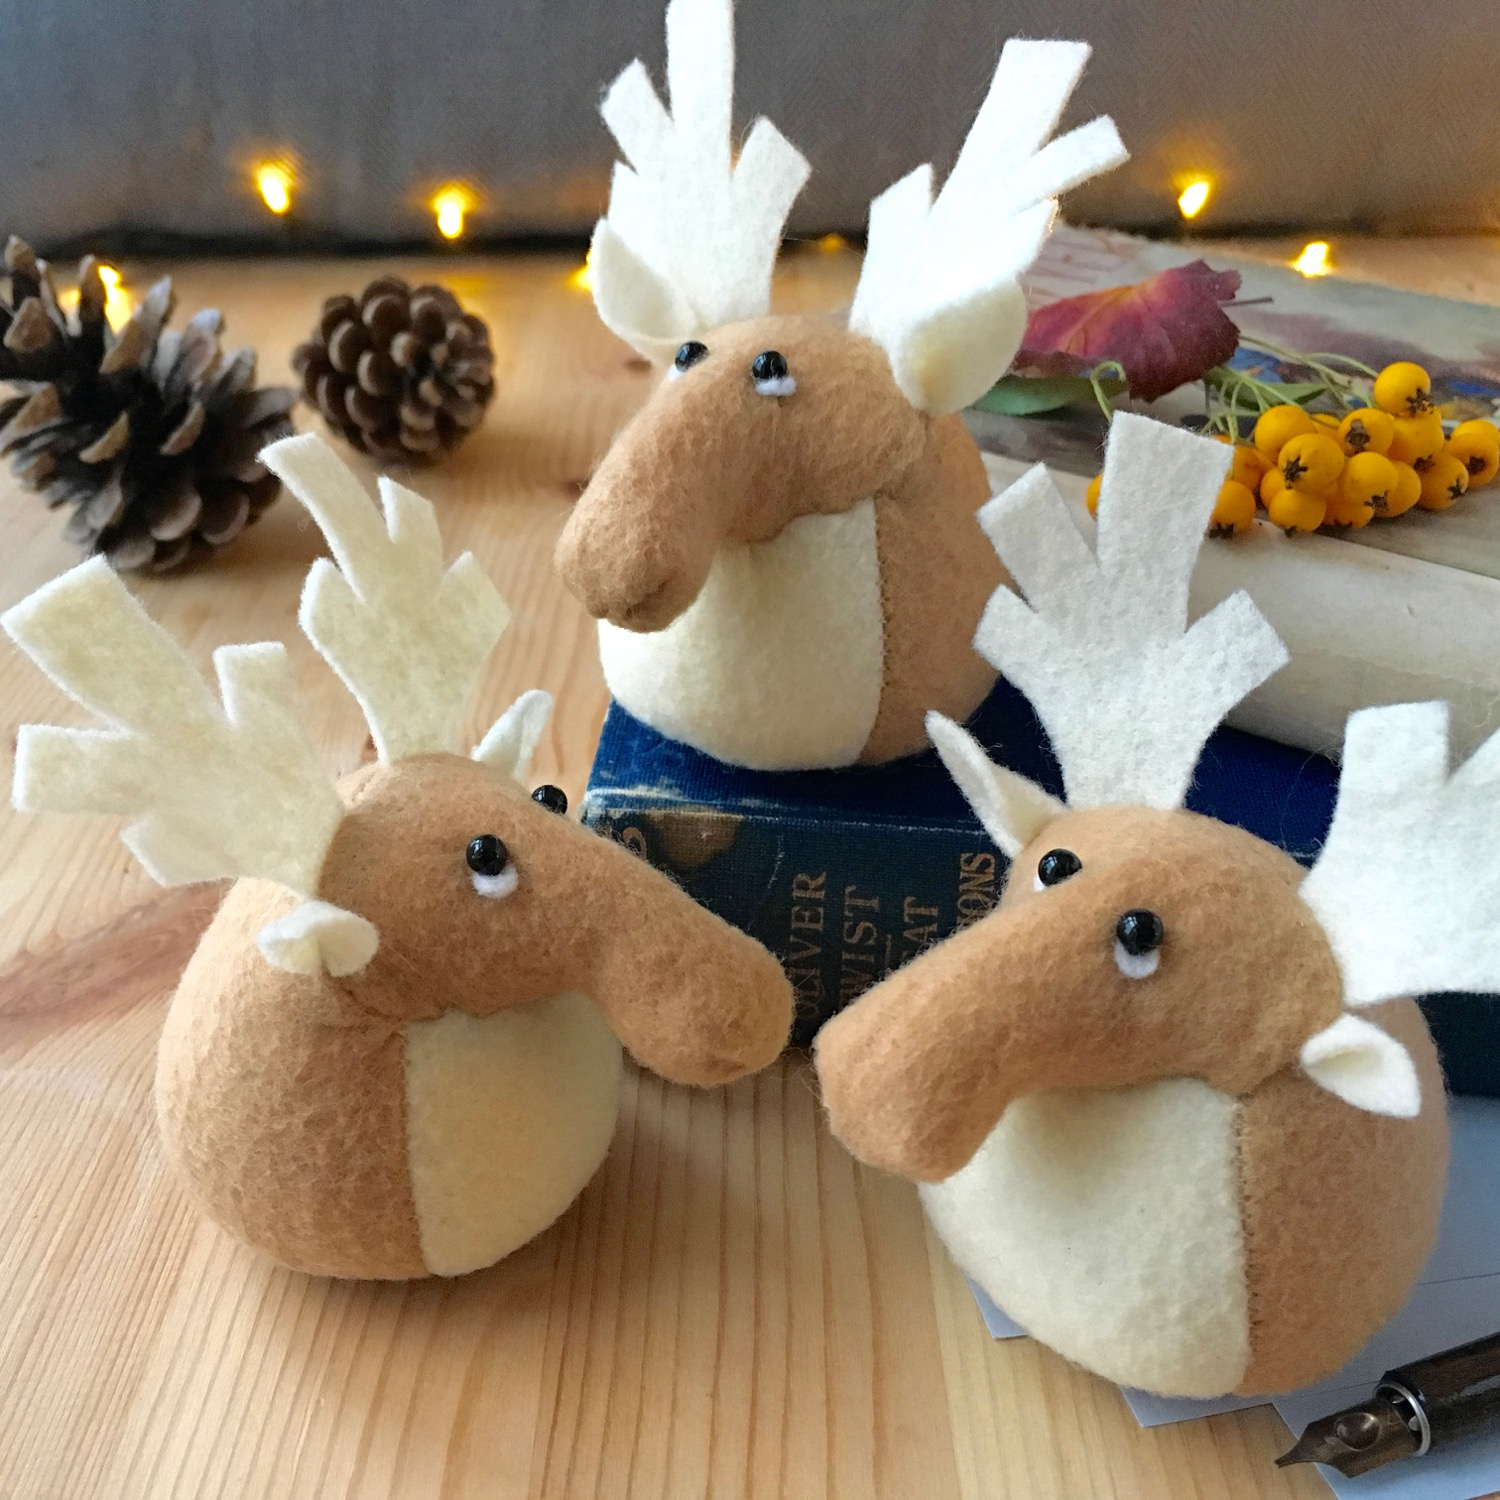 Rupert the Reindeer paperweight handmade from Kunin eco felt | by Bilberry Woods.jpg